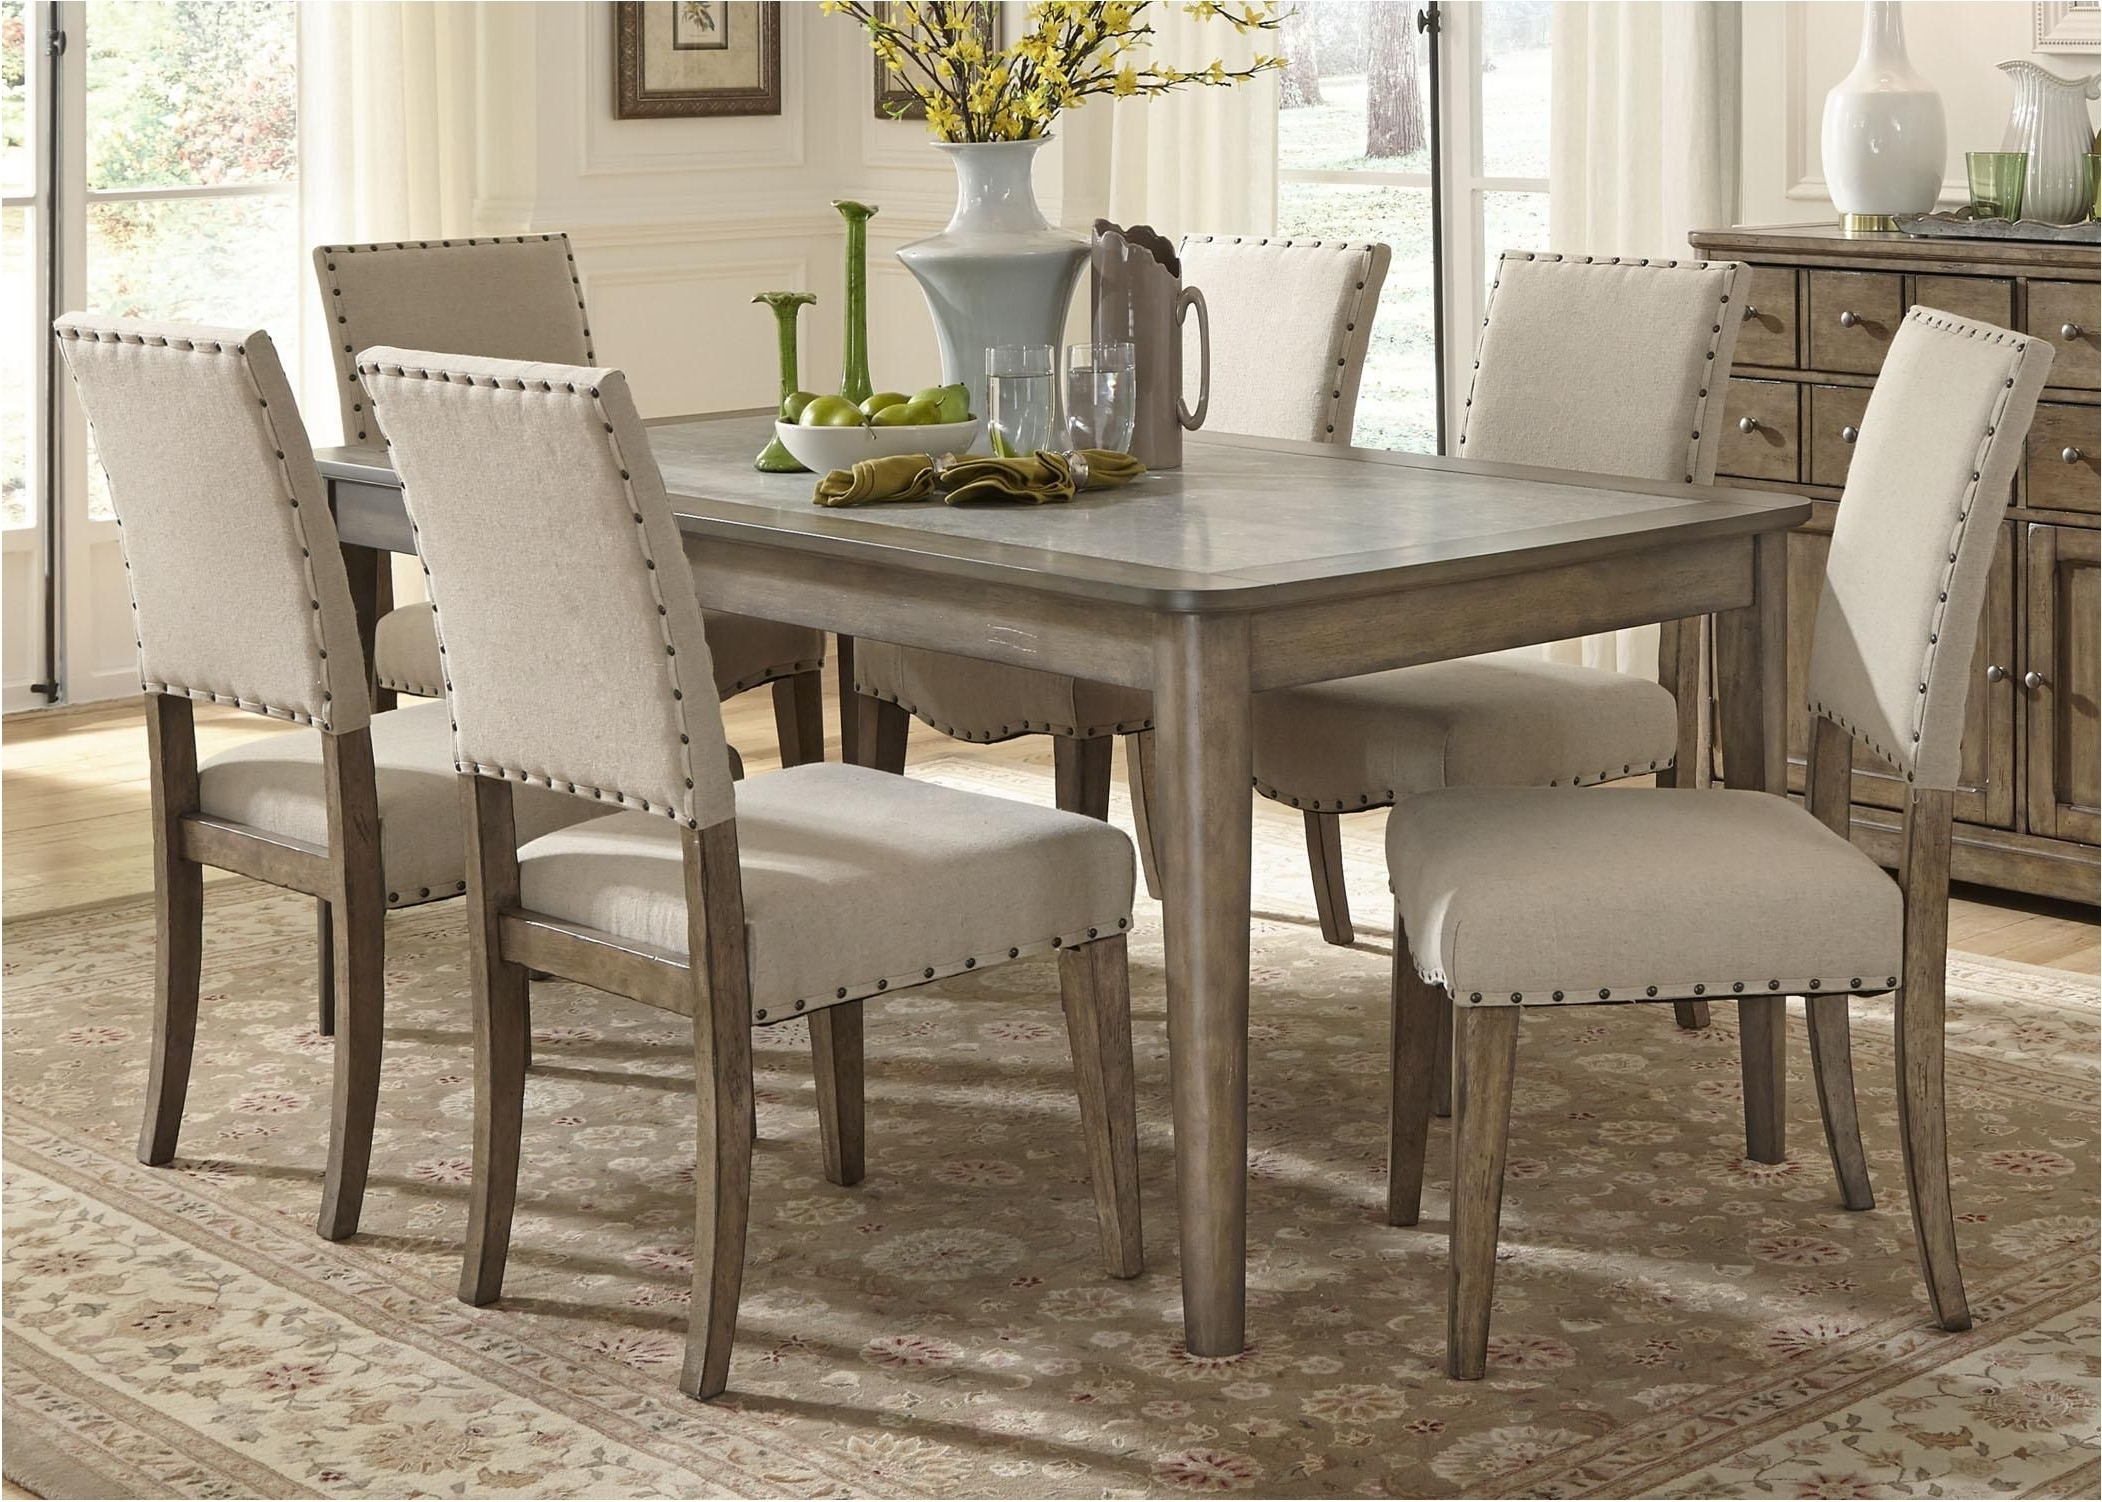 Kitchen Dining Sets Regarding Most Up To Date Lovely New Casual Rustic 7 Piece Dining Table And Chairs Set (View 18 of 25)